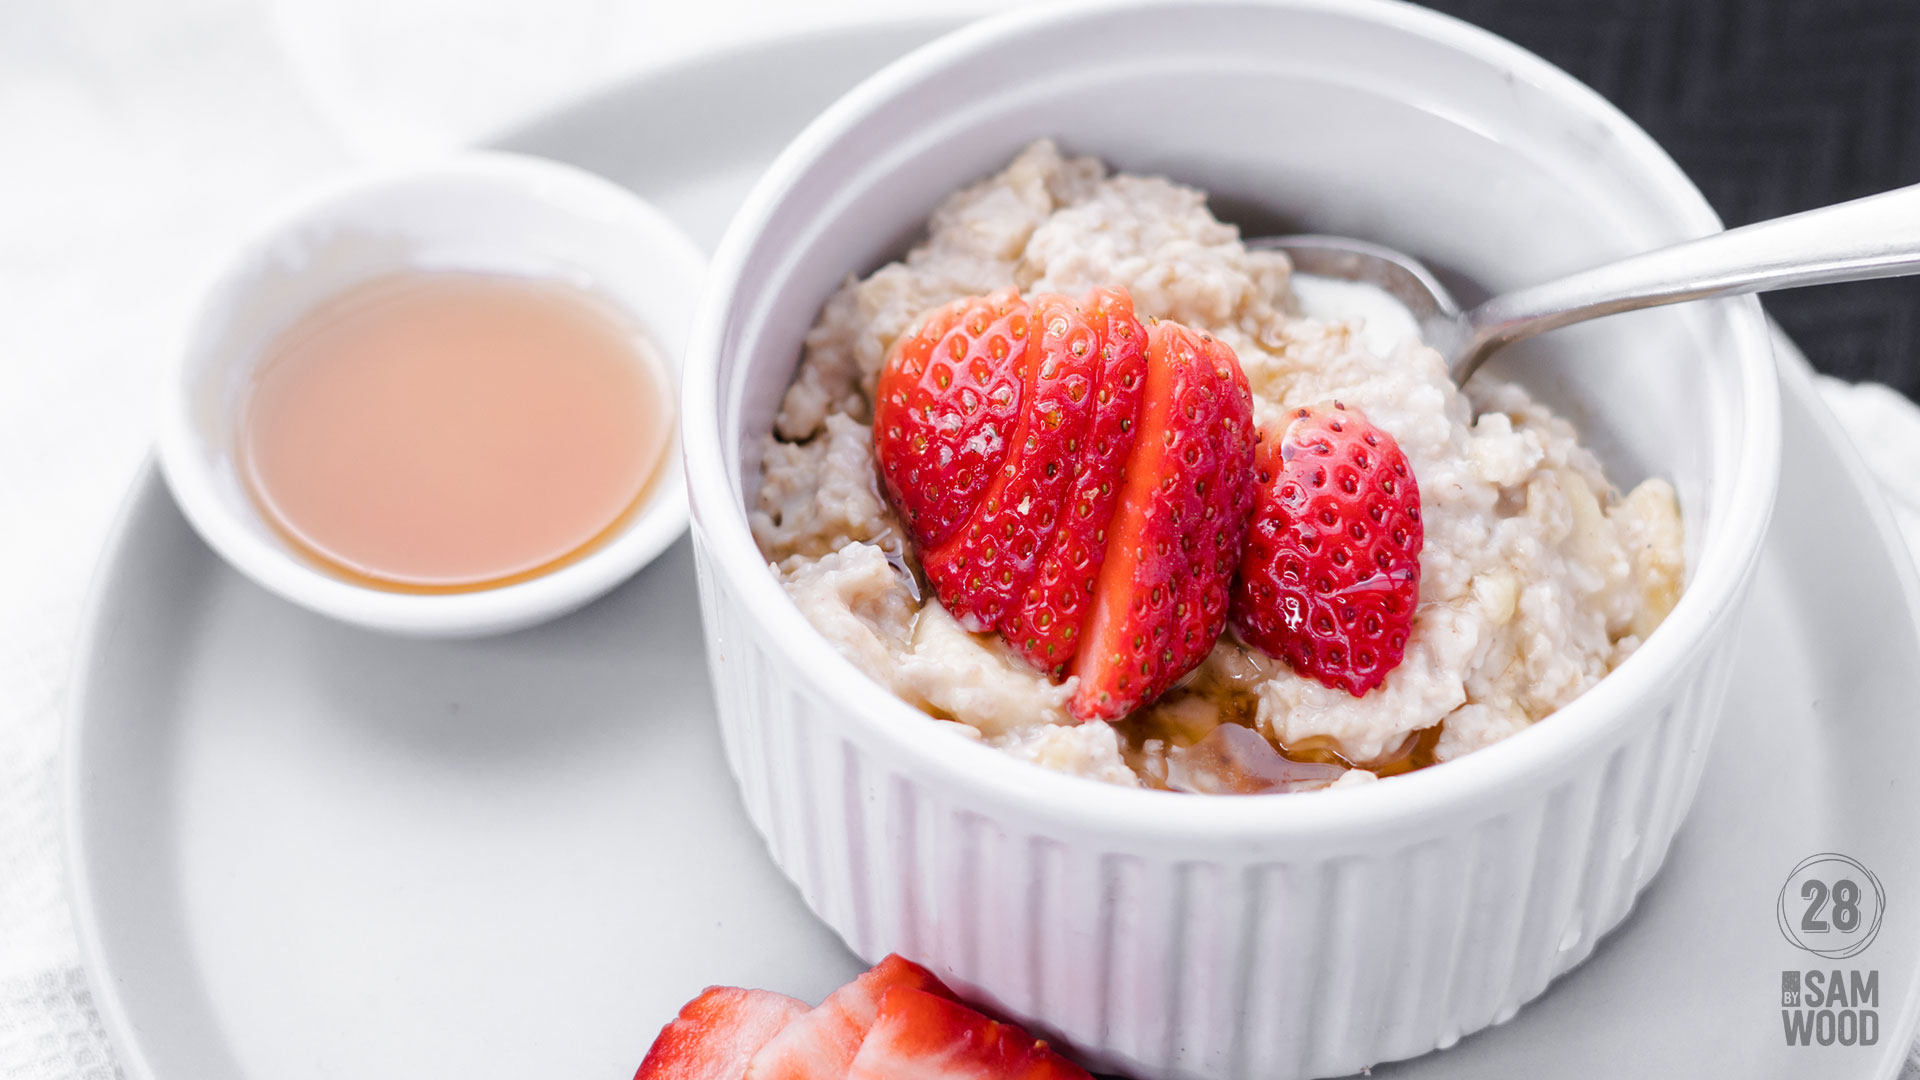 Traditional creamy porridge featured